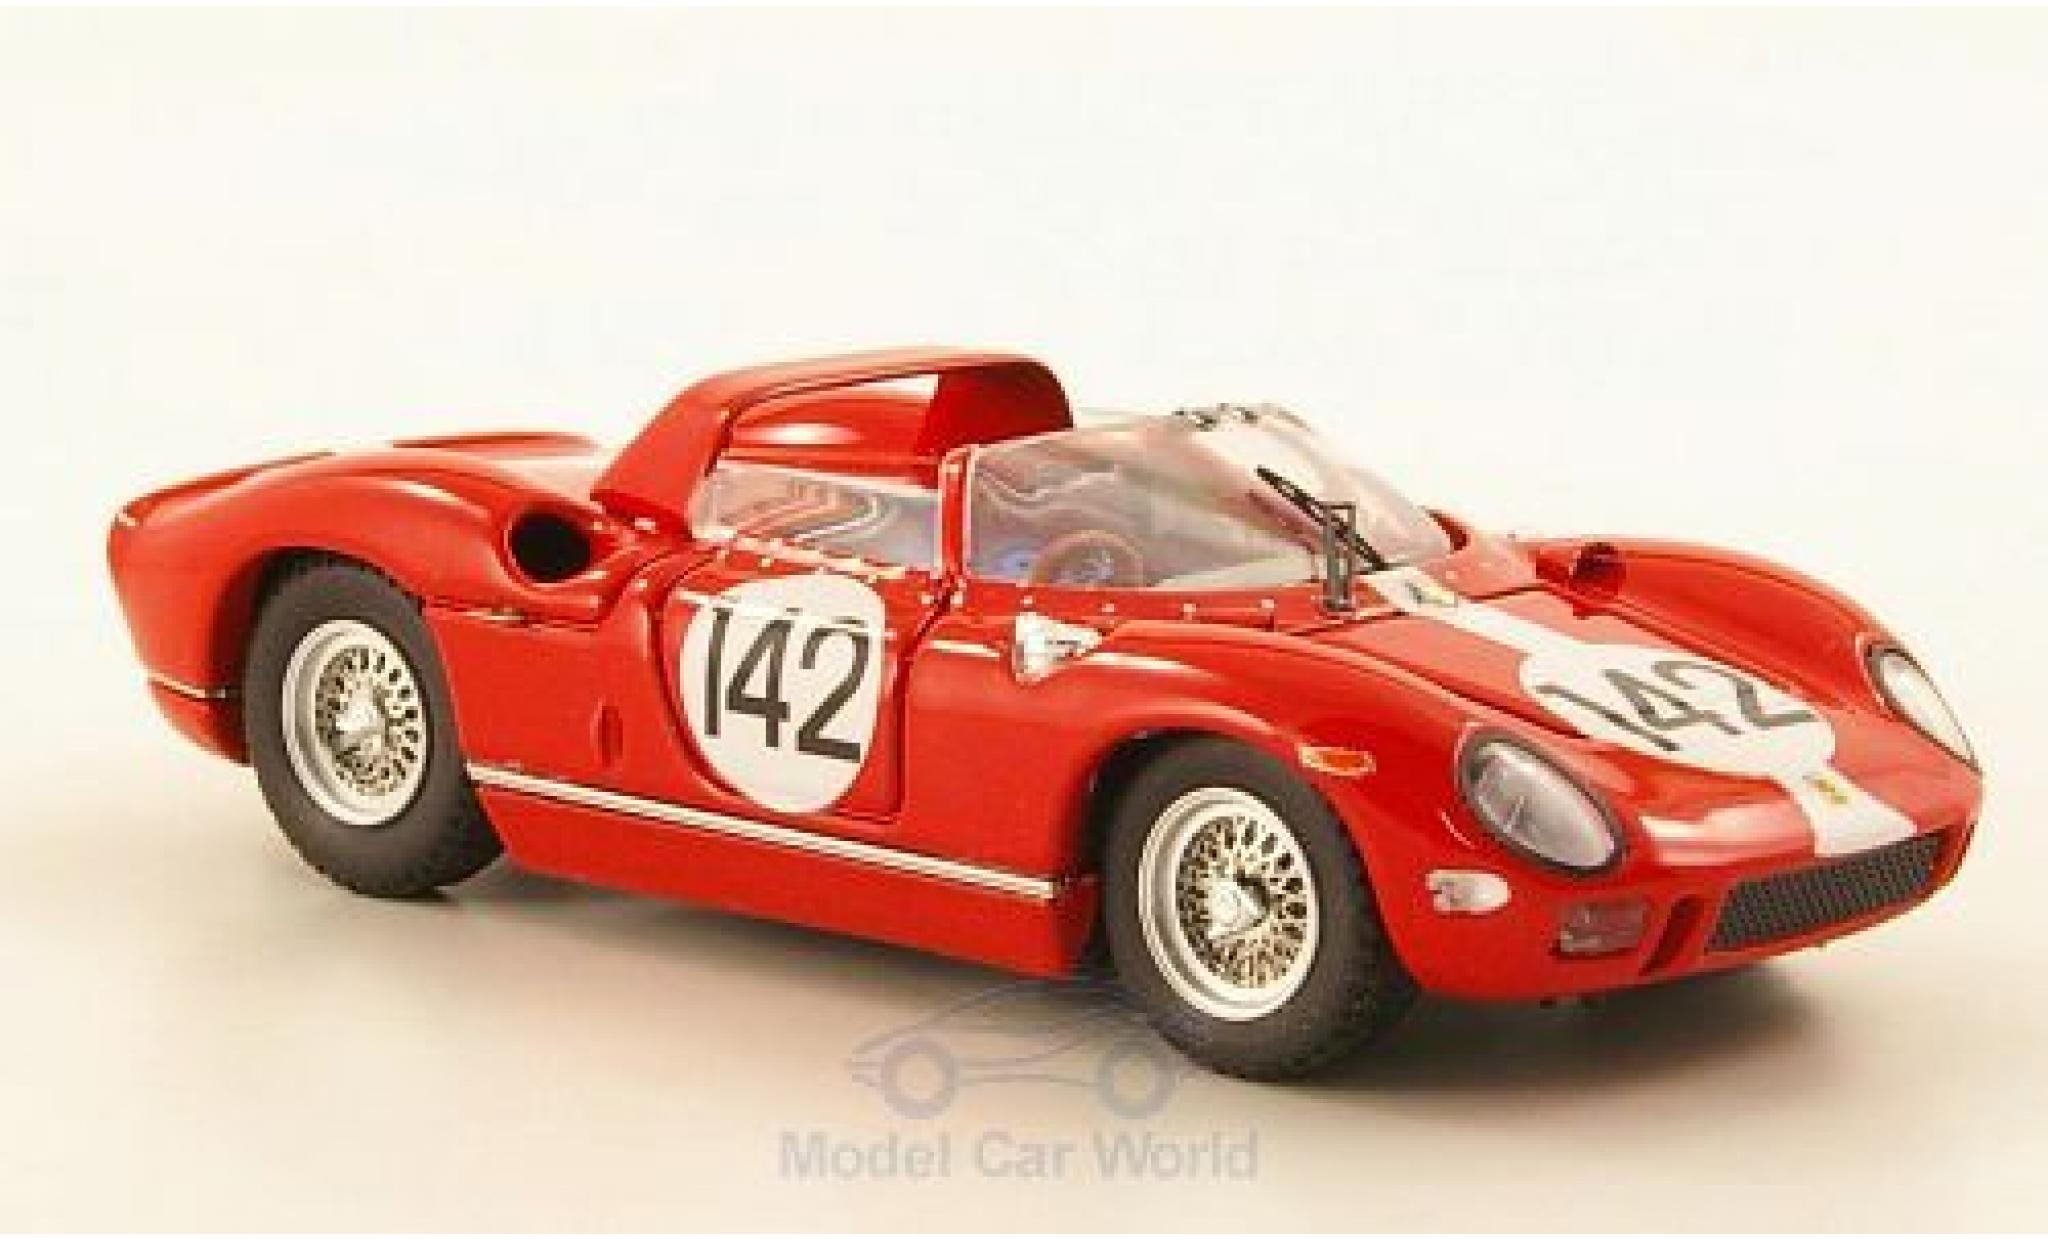 Ferrari 275 1/43 Art Model P No.142 Nürburgring 1964 G.Hill/I.Ireland ohne Vitrine